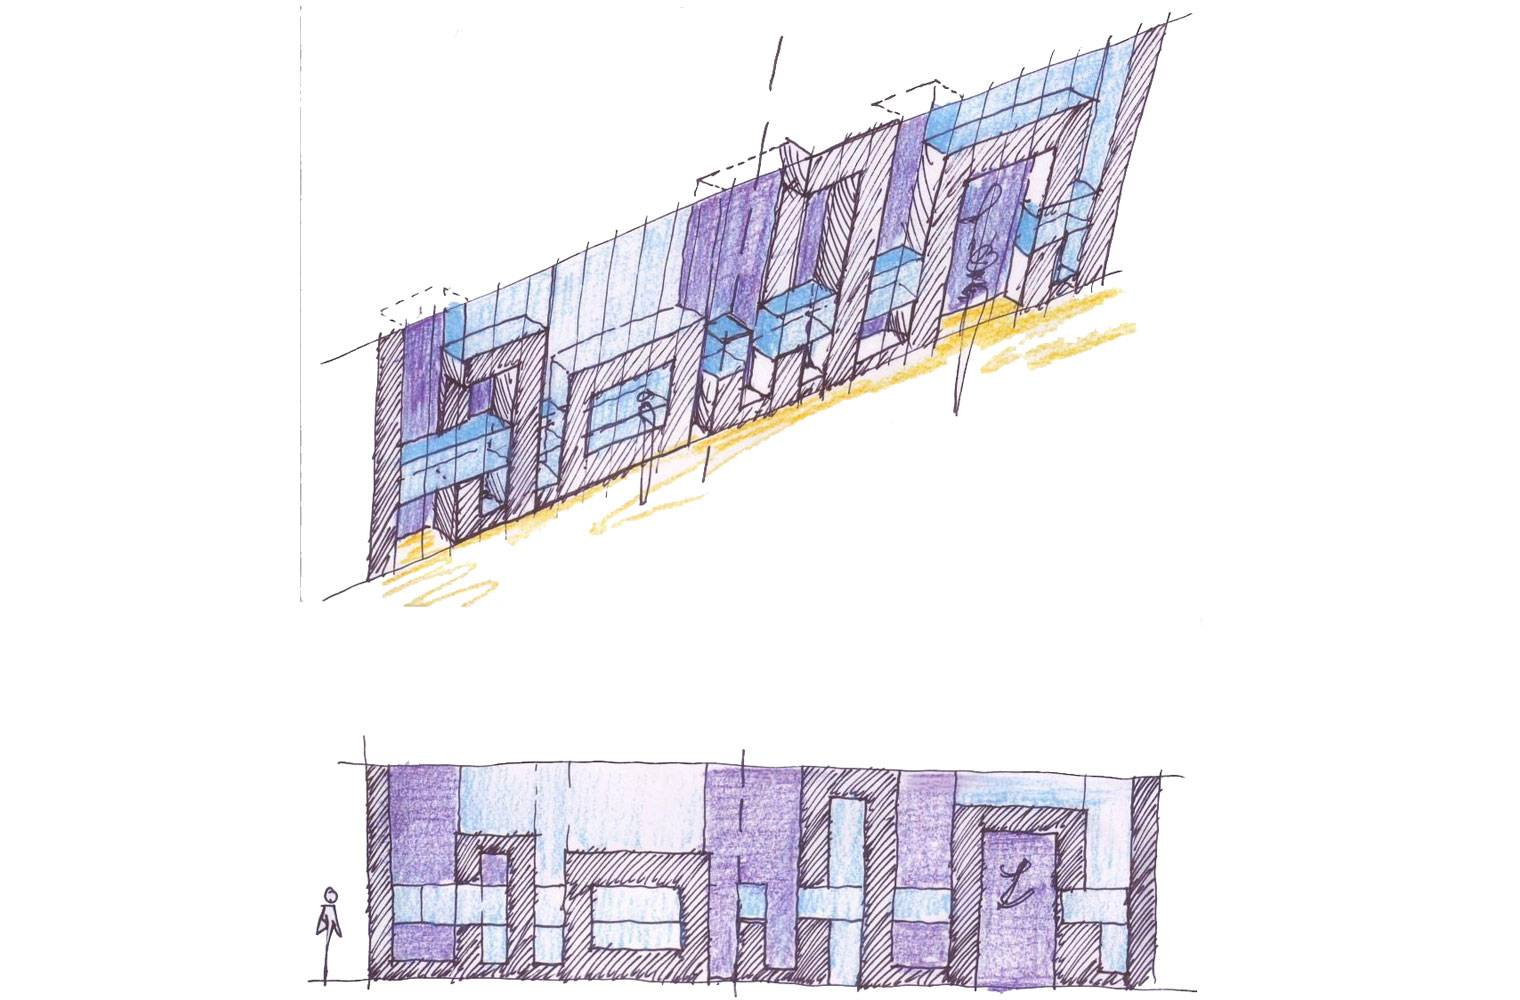 Tanur, Sandton City, Shopfront Concept Sketch